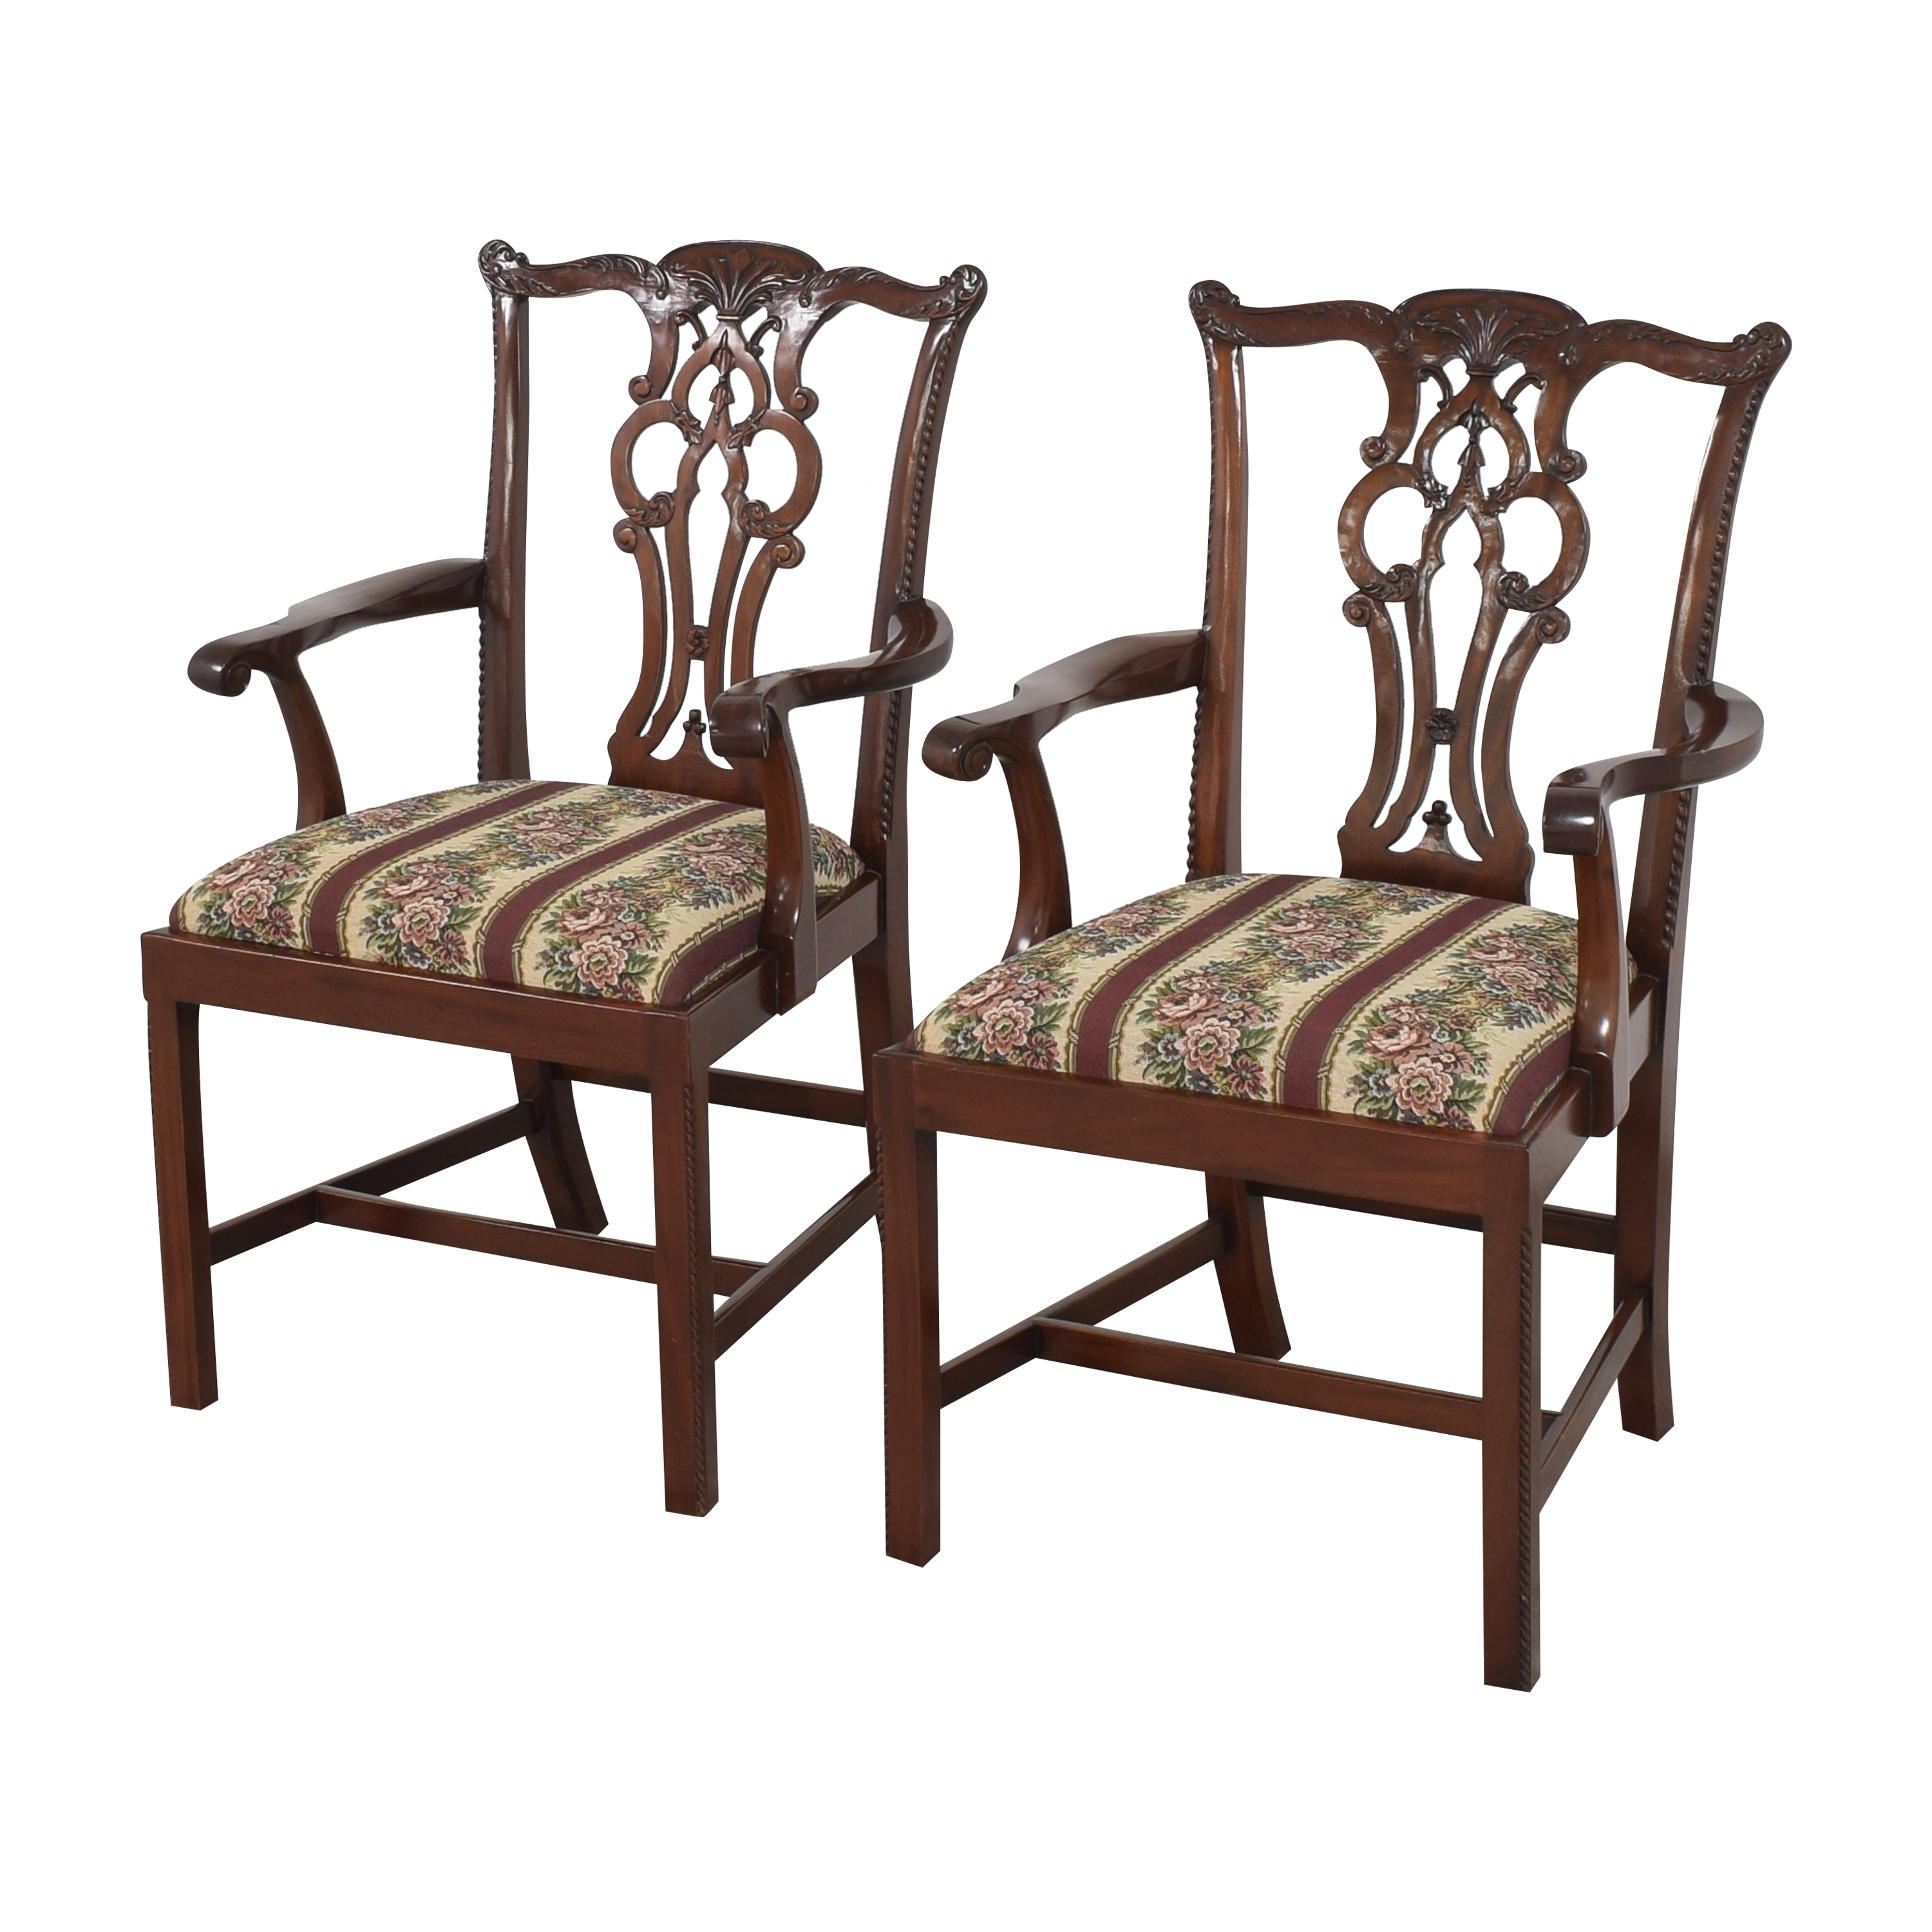 Maitland-Smith Maitland-Smith Chippendale Upholstered Dining Arm Chairs discount